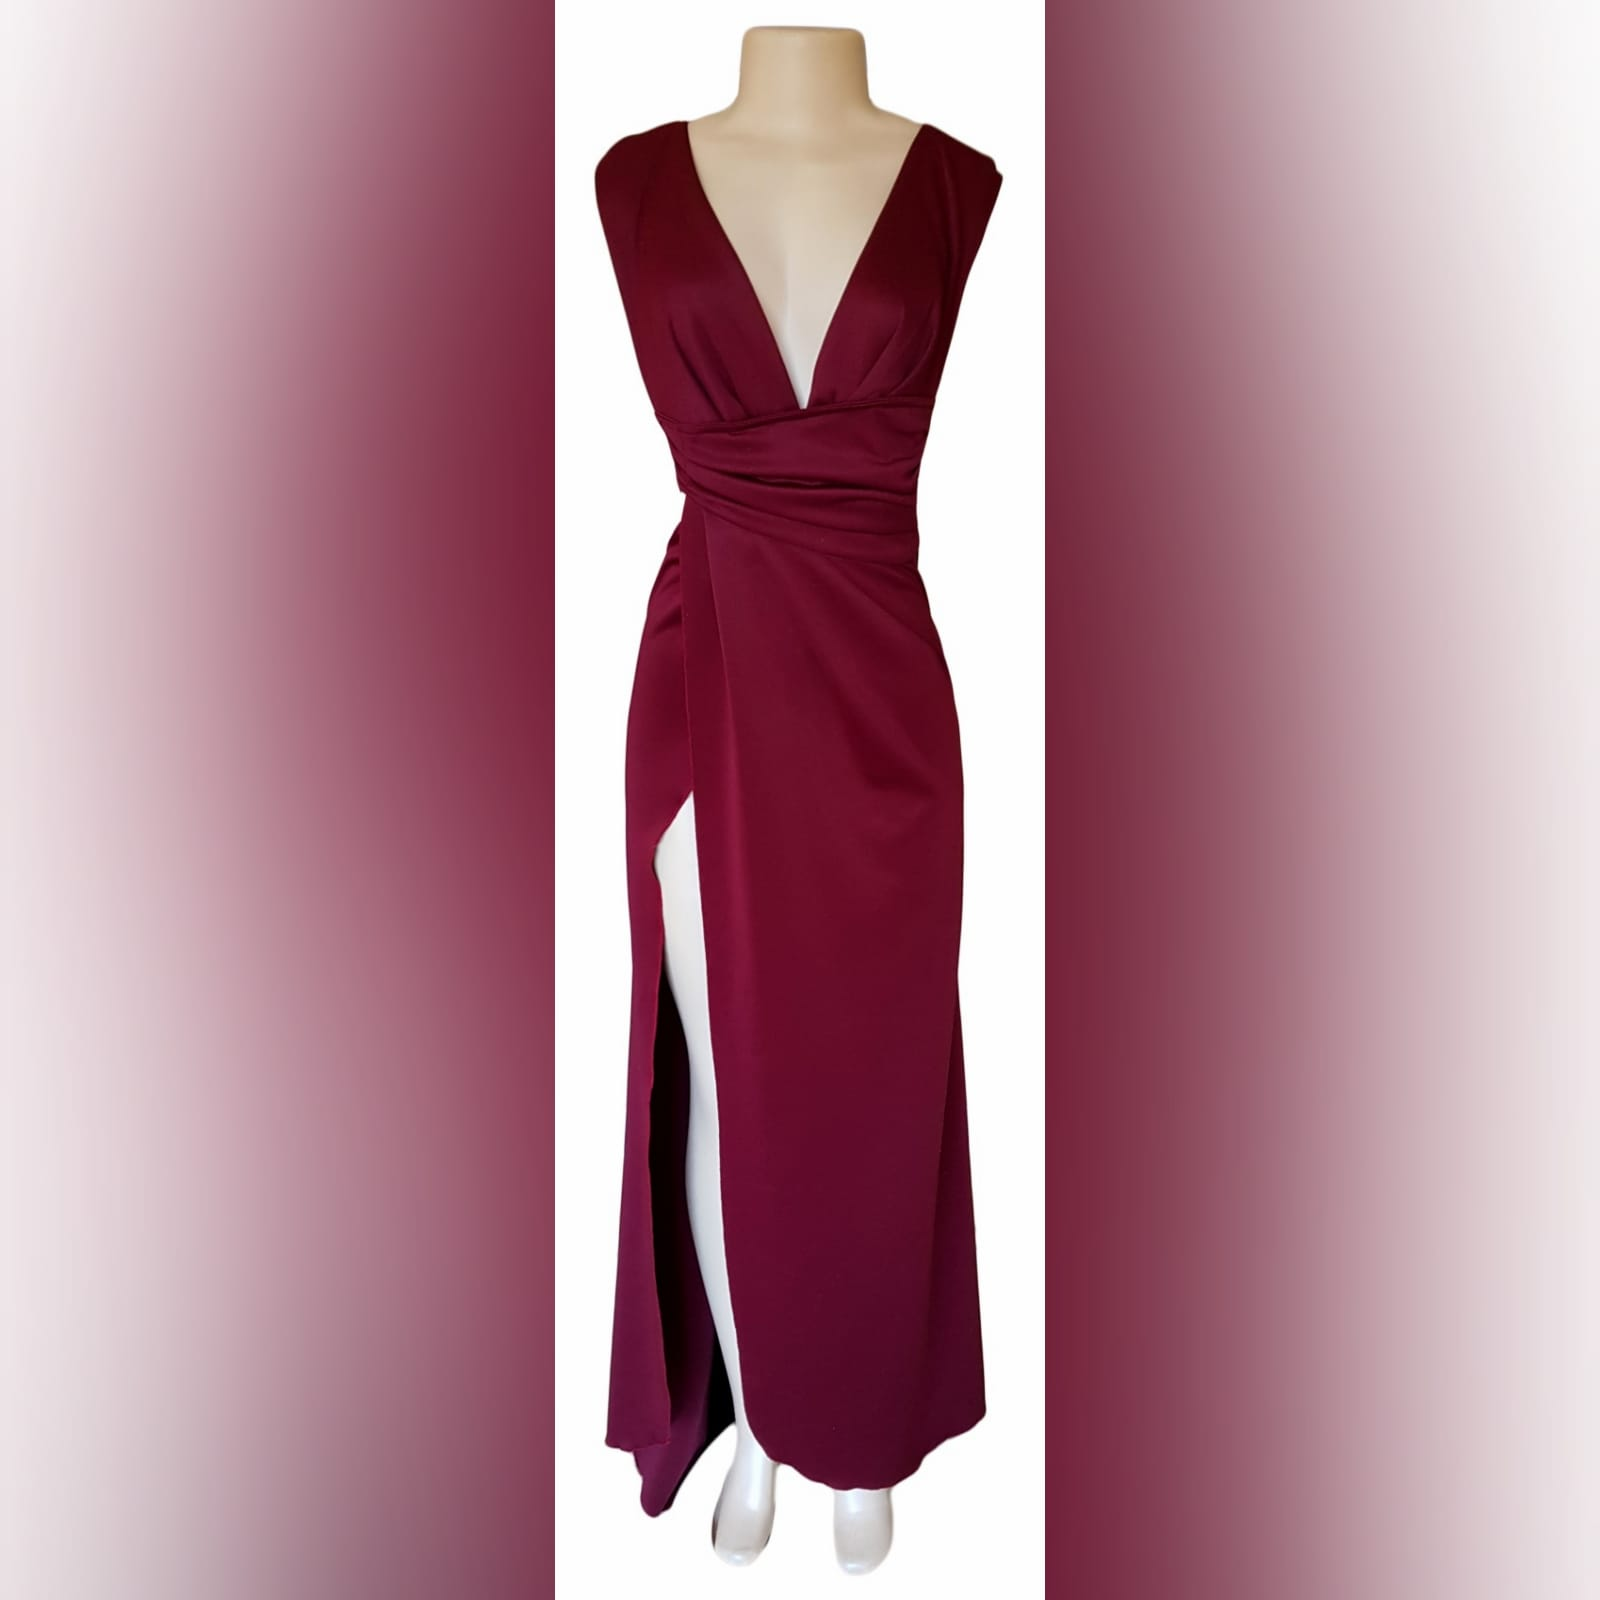 Burgundy draped long prom dress 7 burgundy draped long prom dress with a plunging neckline, sides open, crossed slit and a little train.